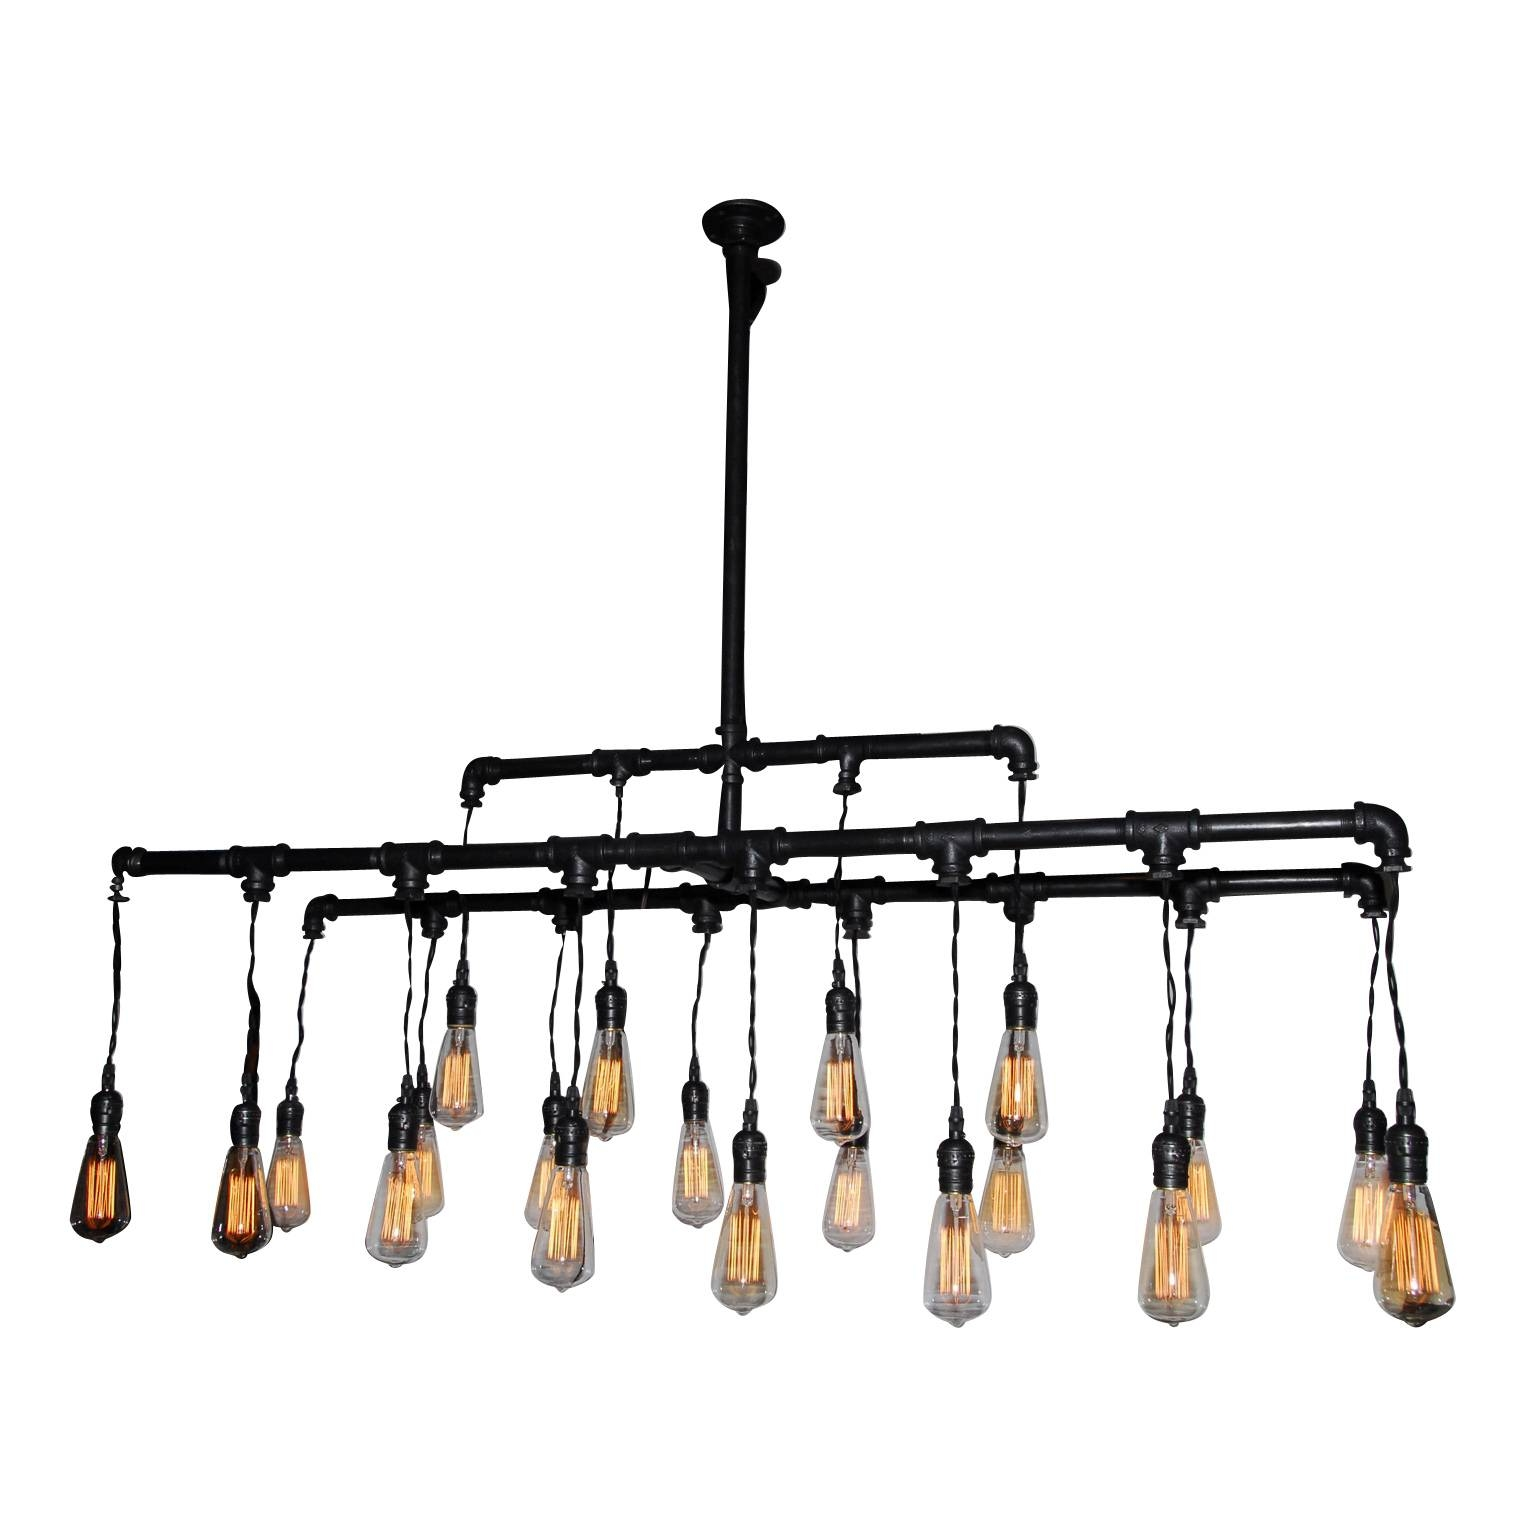 Industrial Style Pendant Light (Vintage Lighting) At Victorian Revival throughout Industrial Looking Pendant Light Fixtures (Image 8 of 15)